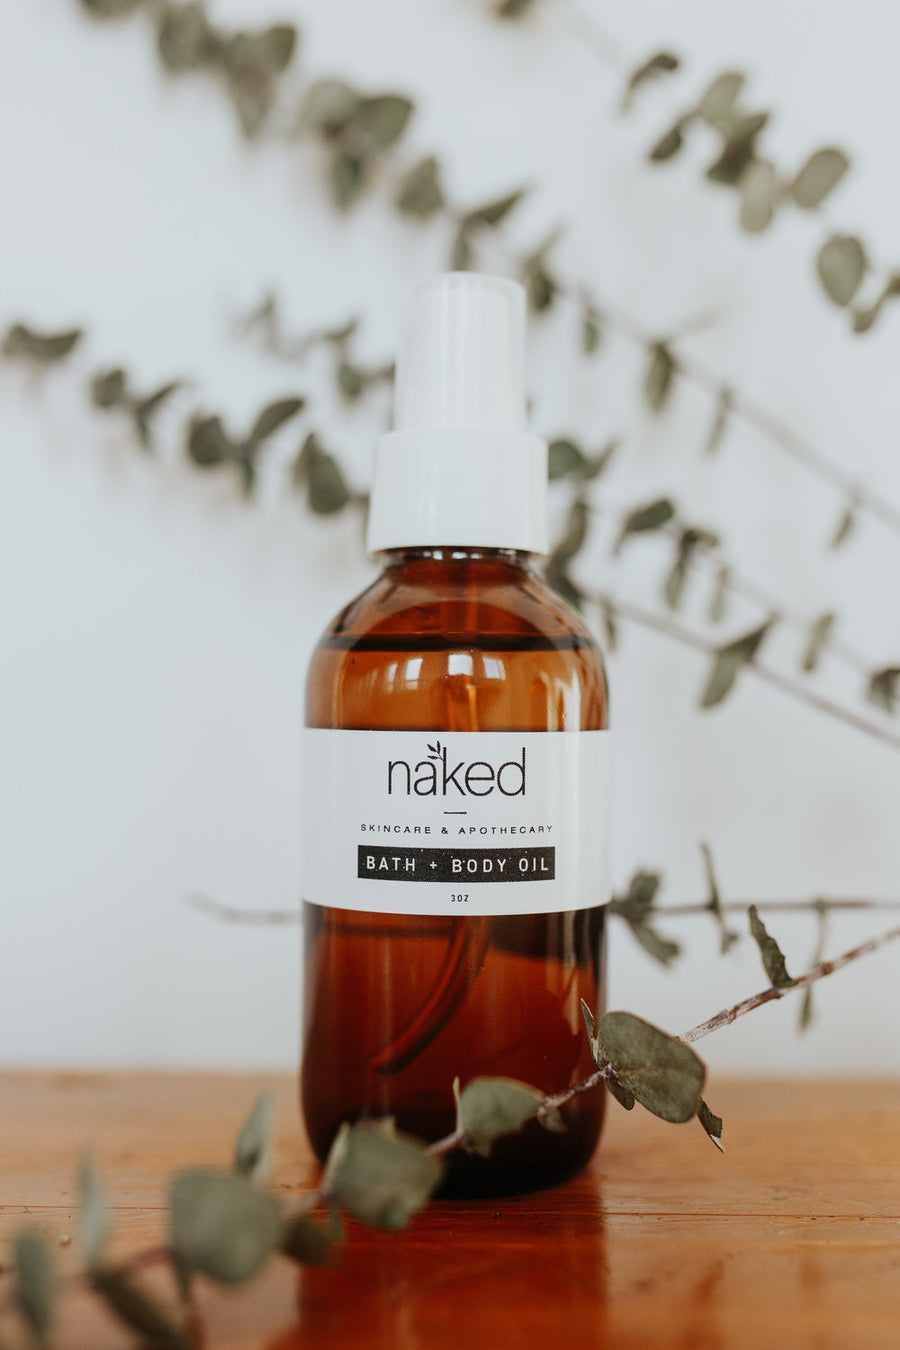 Bath and Body Oil Spray - Naked Skincare